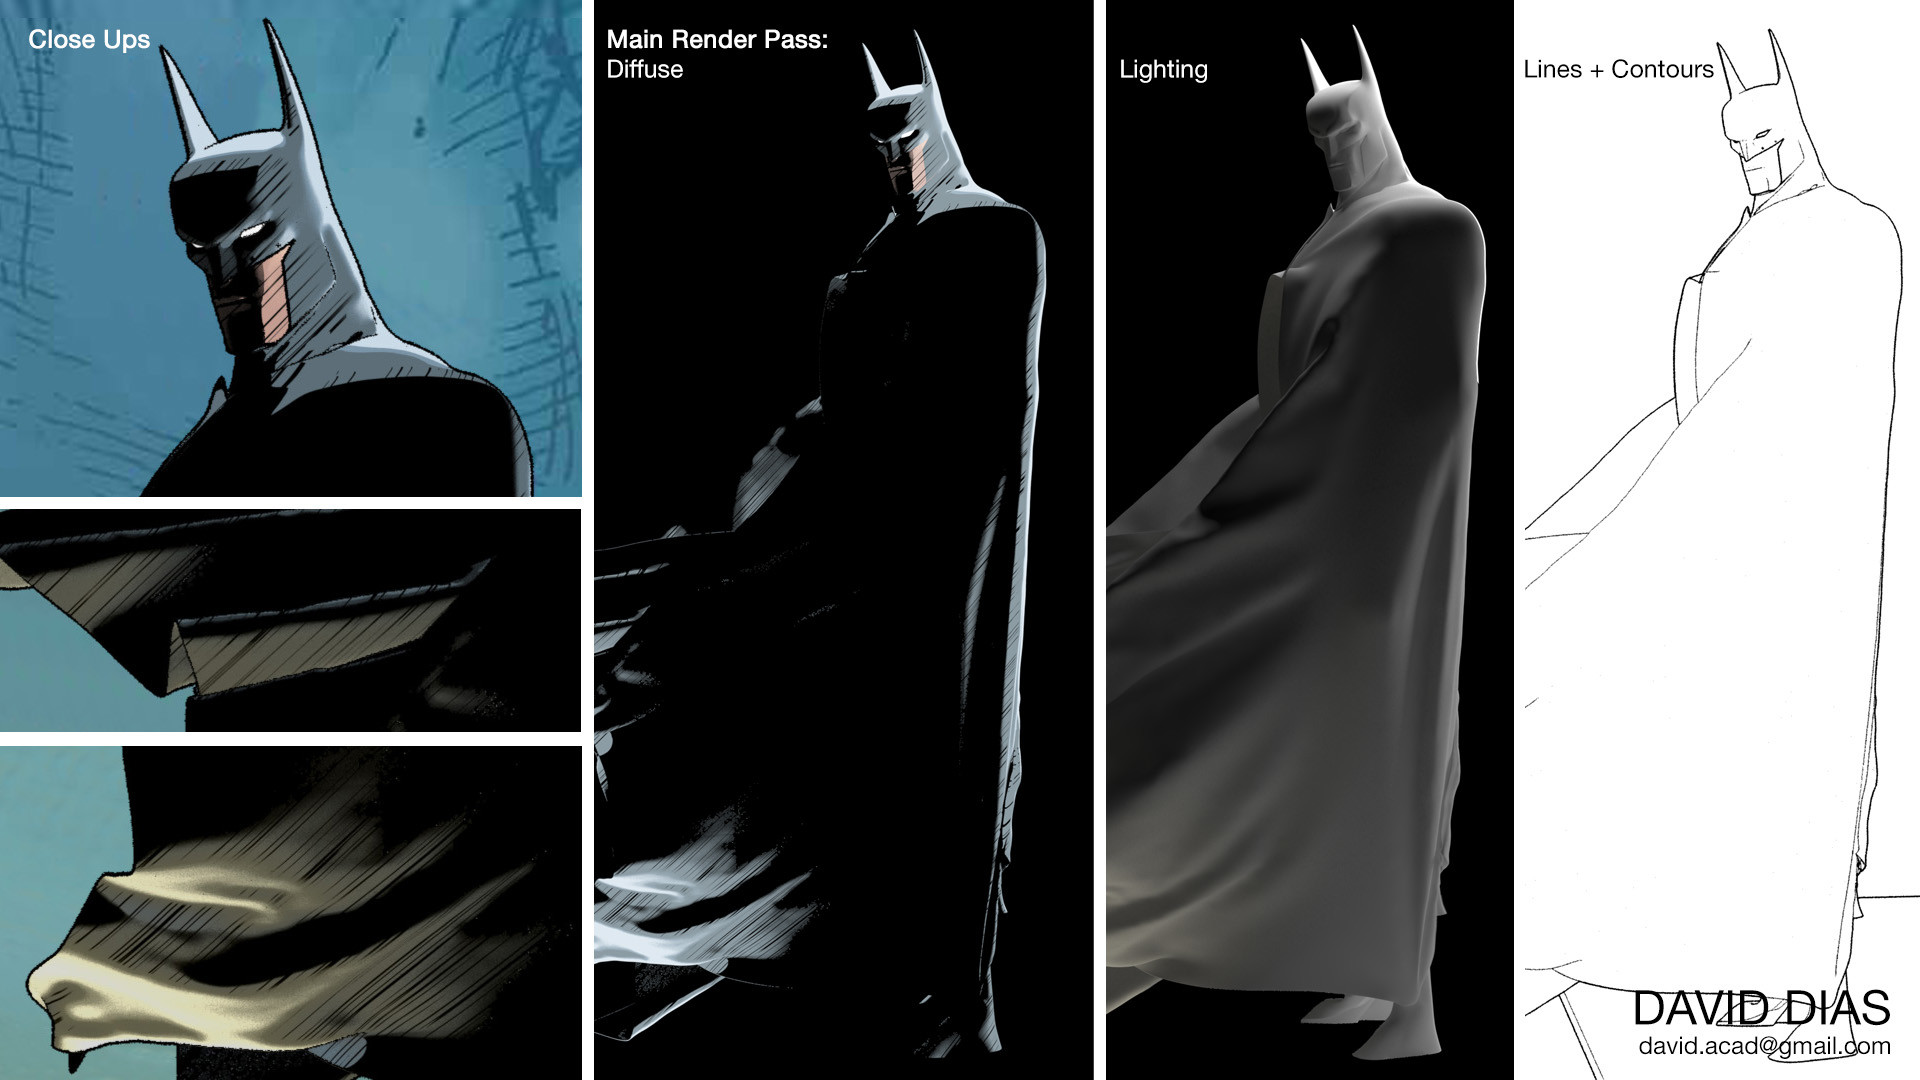 ArtStation - Batman 3D Toon Shader/Modeling, David Dias